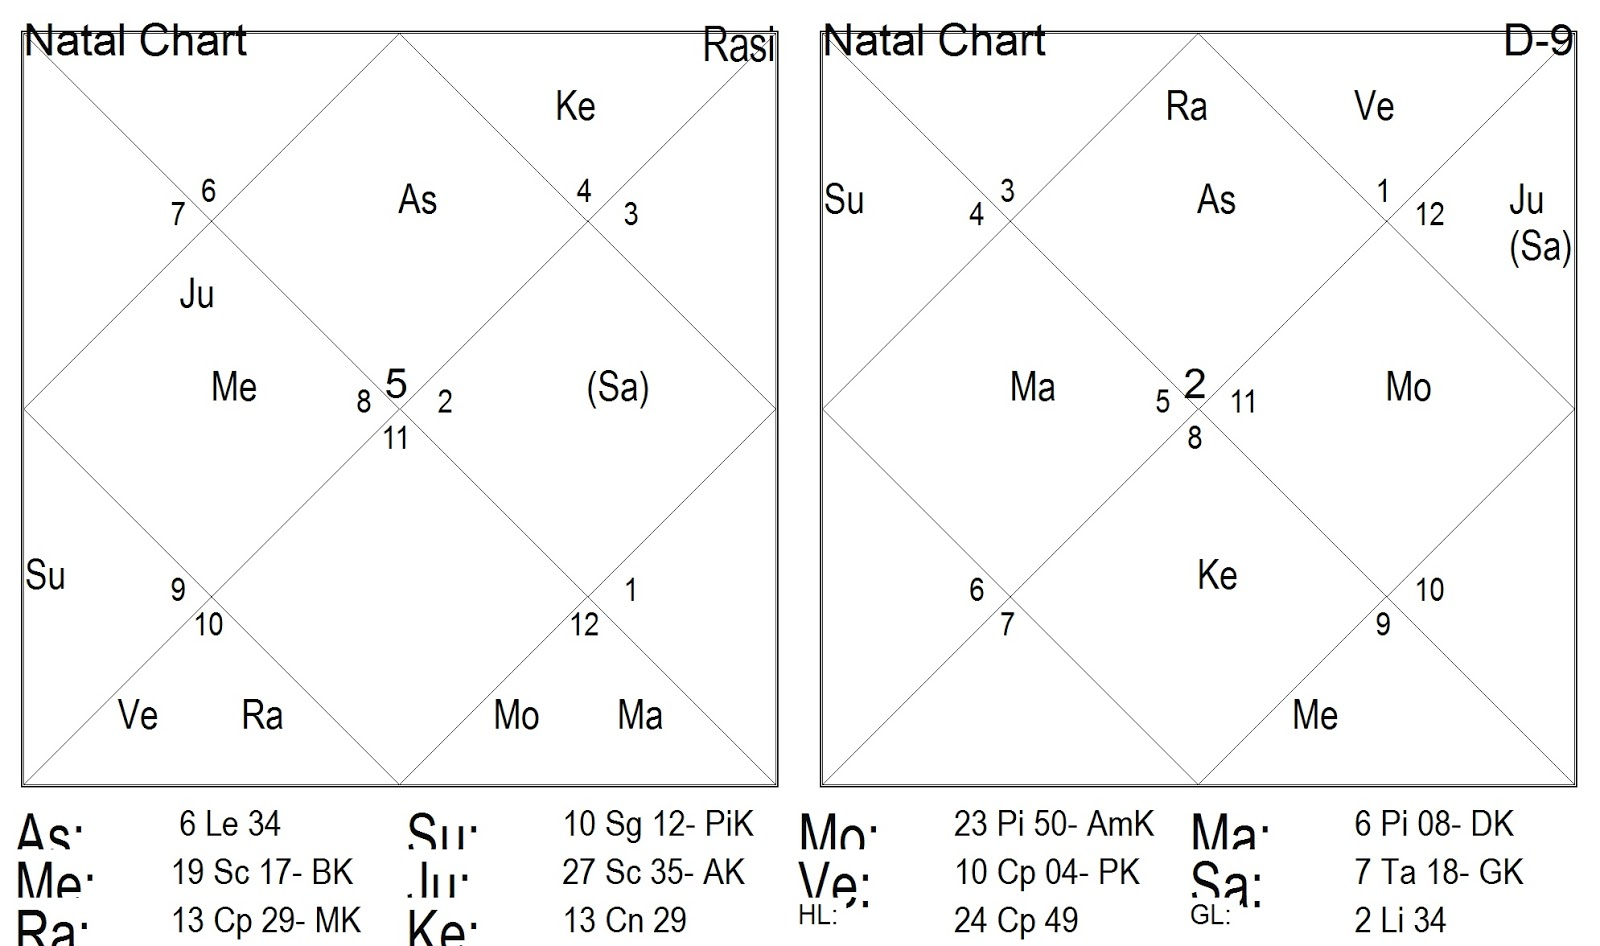 So I Will Avoid Making Any Prediction About Their Chances In This Elections Based On Individuals Birth Charts